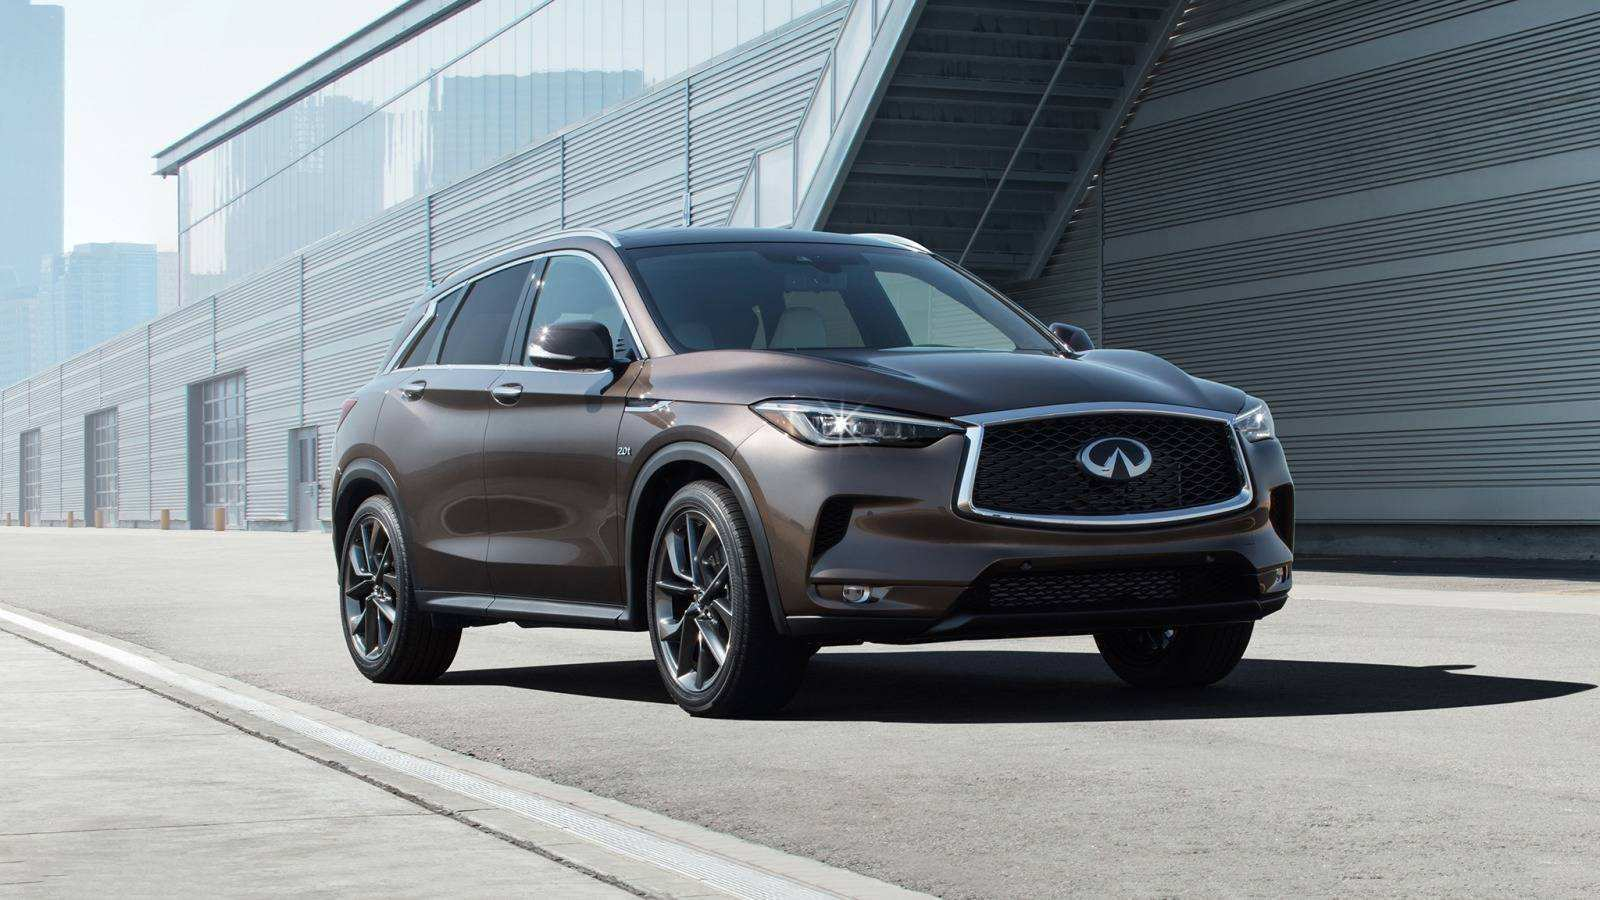 58 Gallery of 2019 Infiniti Qx50 Crossover Redesign with 2019 Infiniti Qx50 Crossover